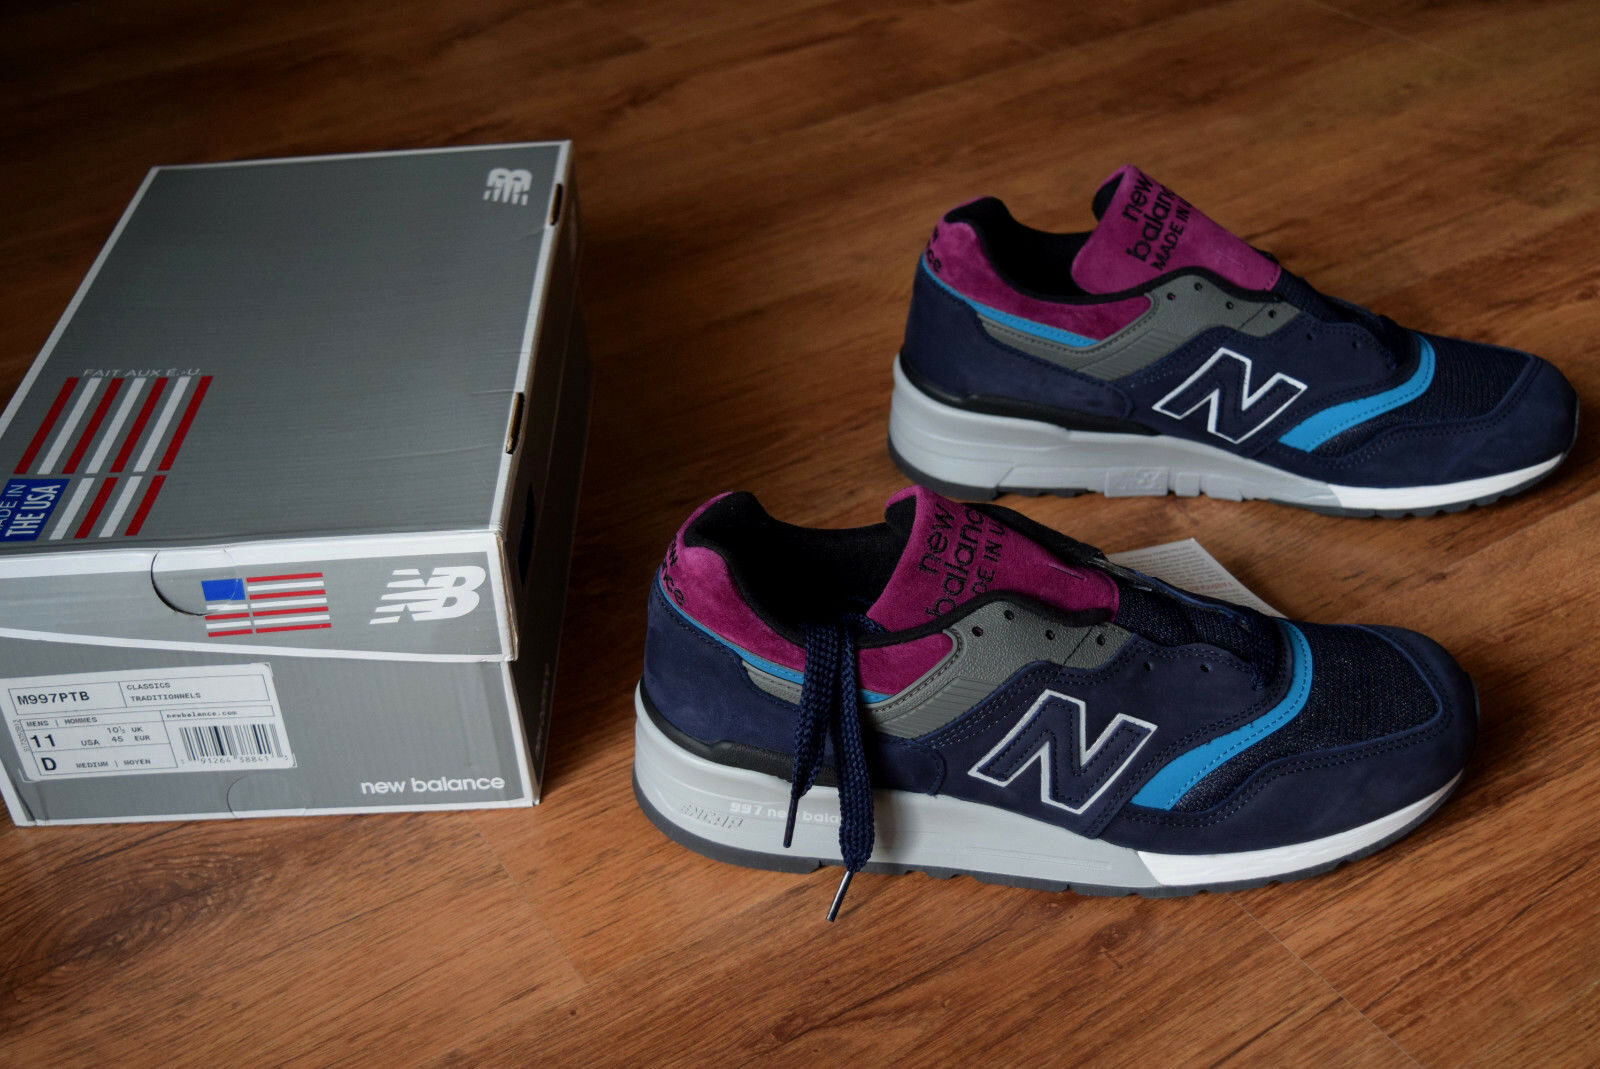 NEW Balance m997 42 44 45 made made made in USA CLASSIC PTB 997 576 998 999 m997ptb b2a039